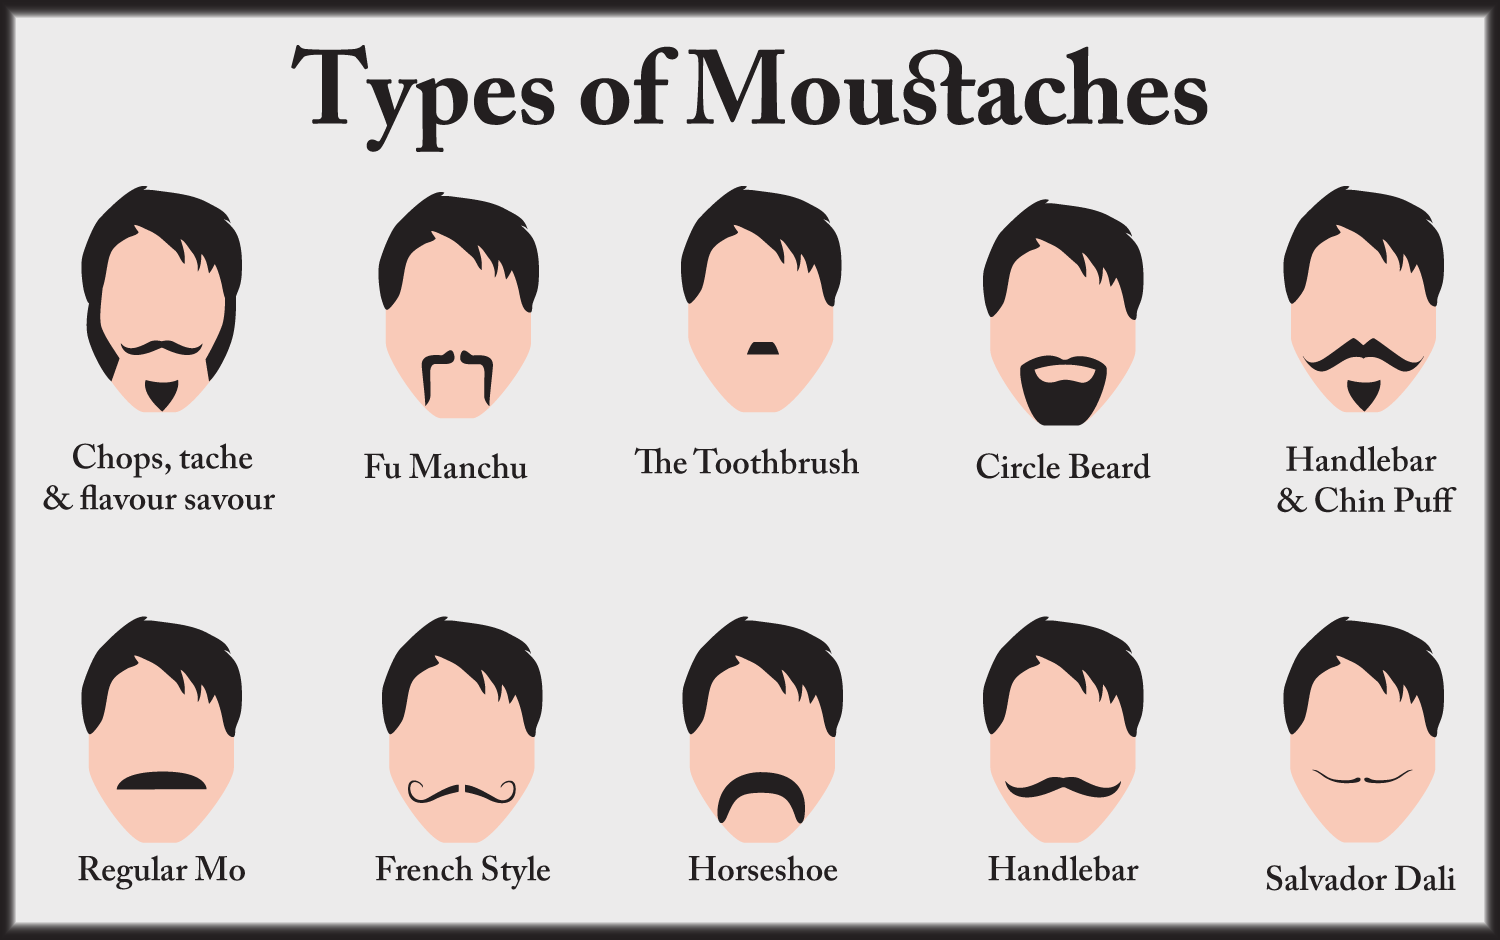 Fu Manchu Mustache Clip Art A moustache, think again!